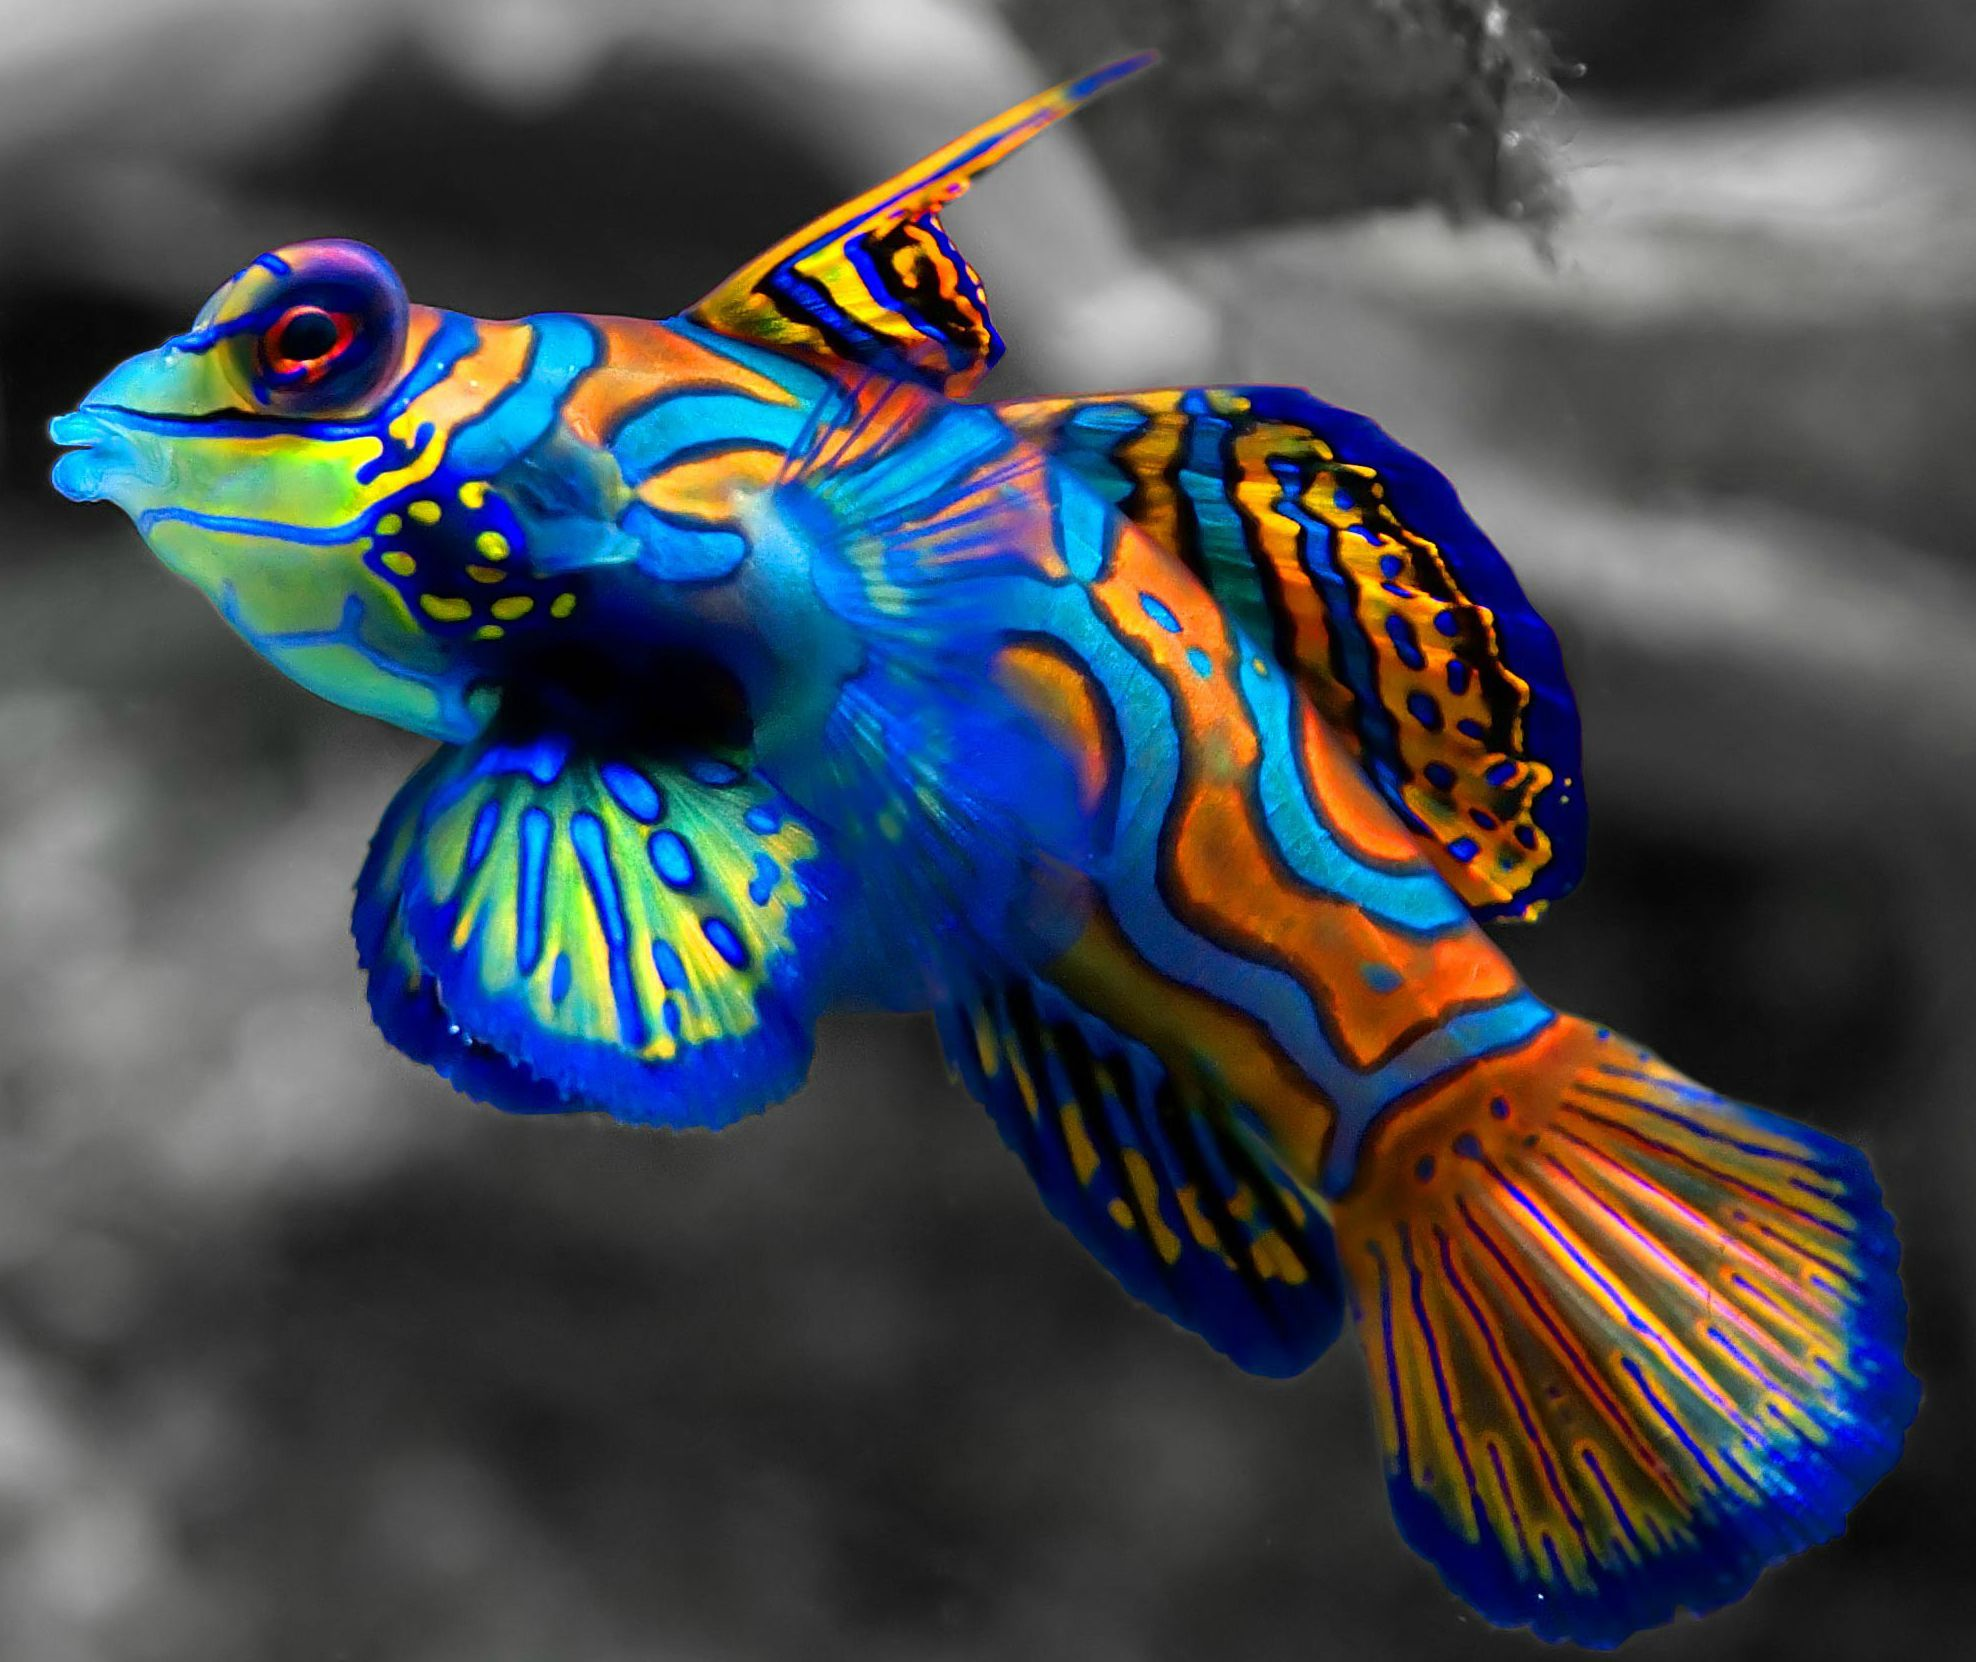 Live saltwater fish mandarin goby green 500 pods for Live saltwater fish